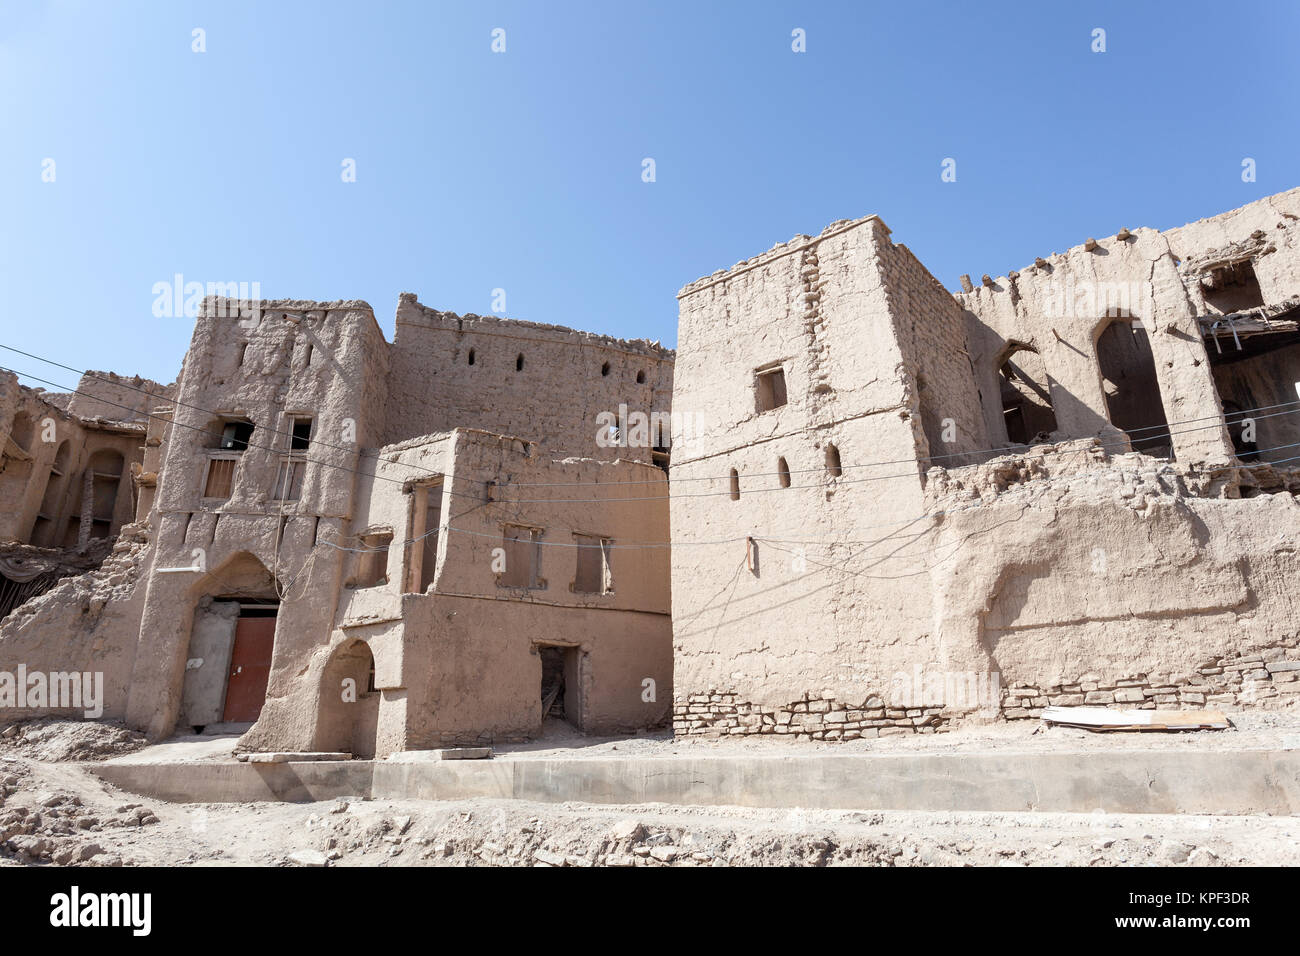 Old fortress in Muscat, Sultanate of Oman : Layover Guide